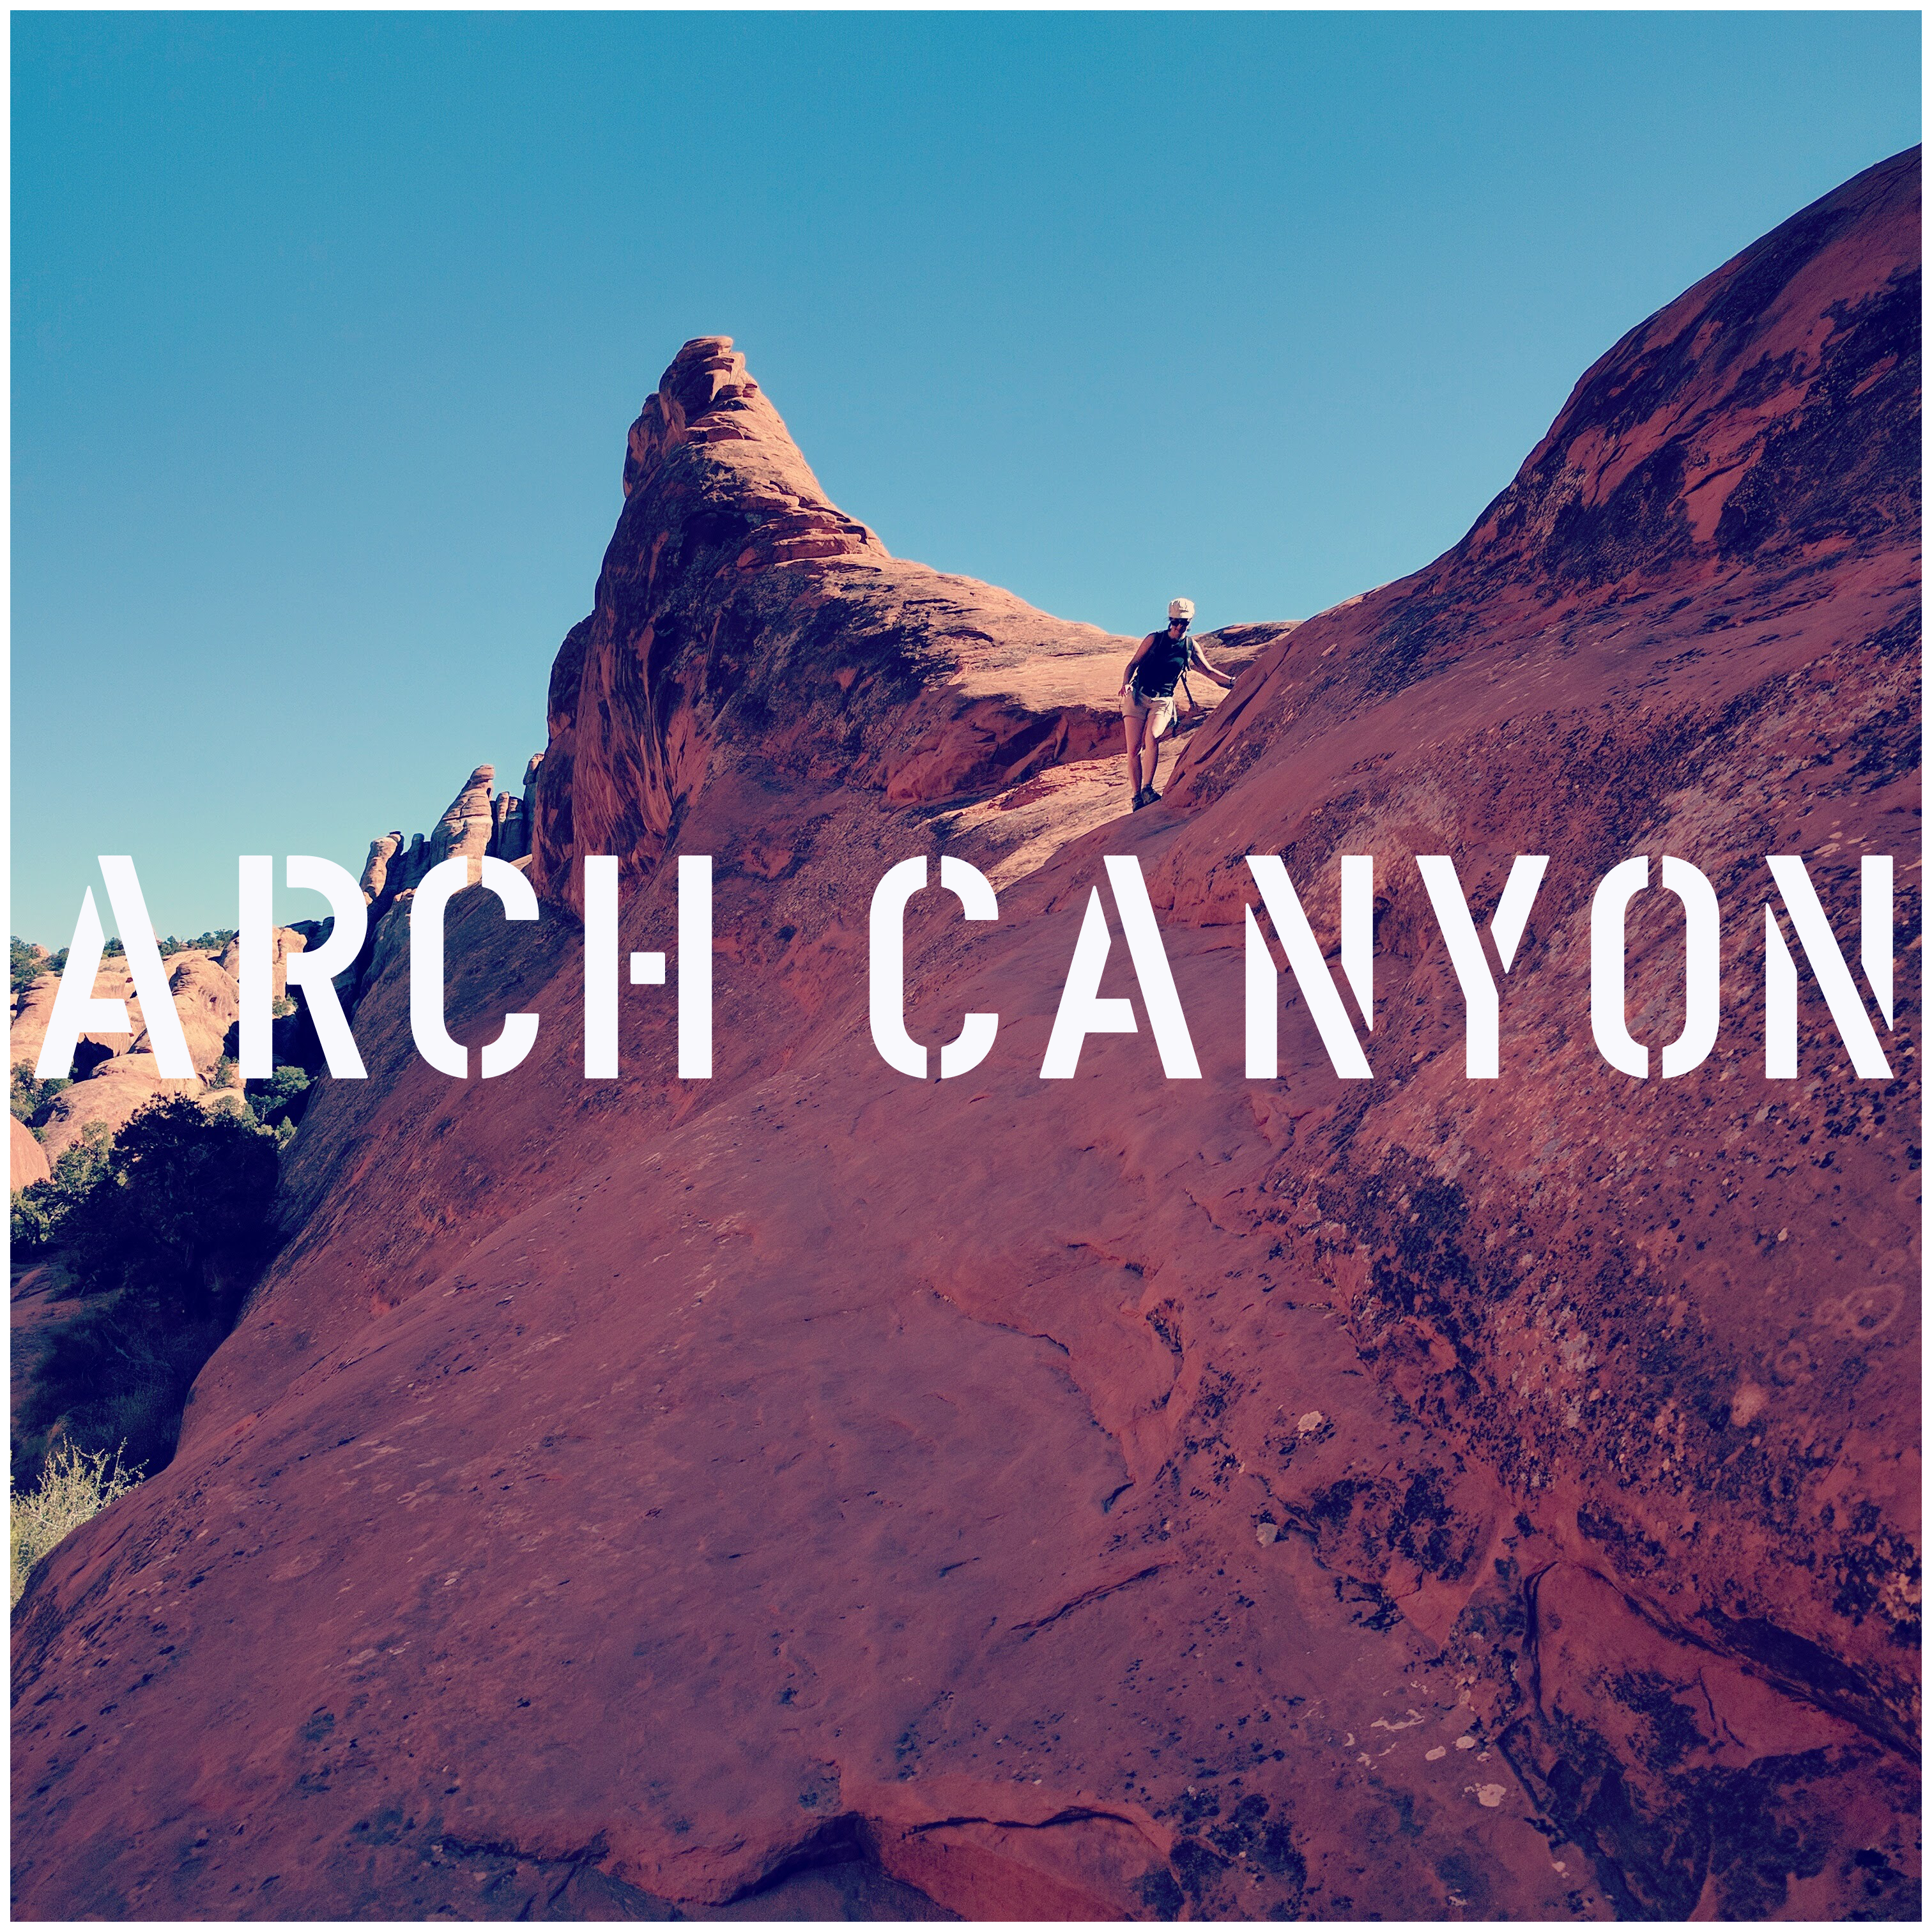 Arch_canyon